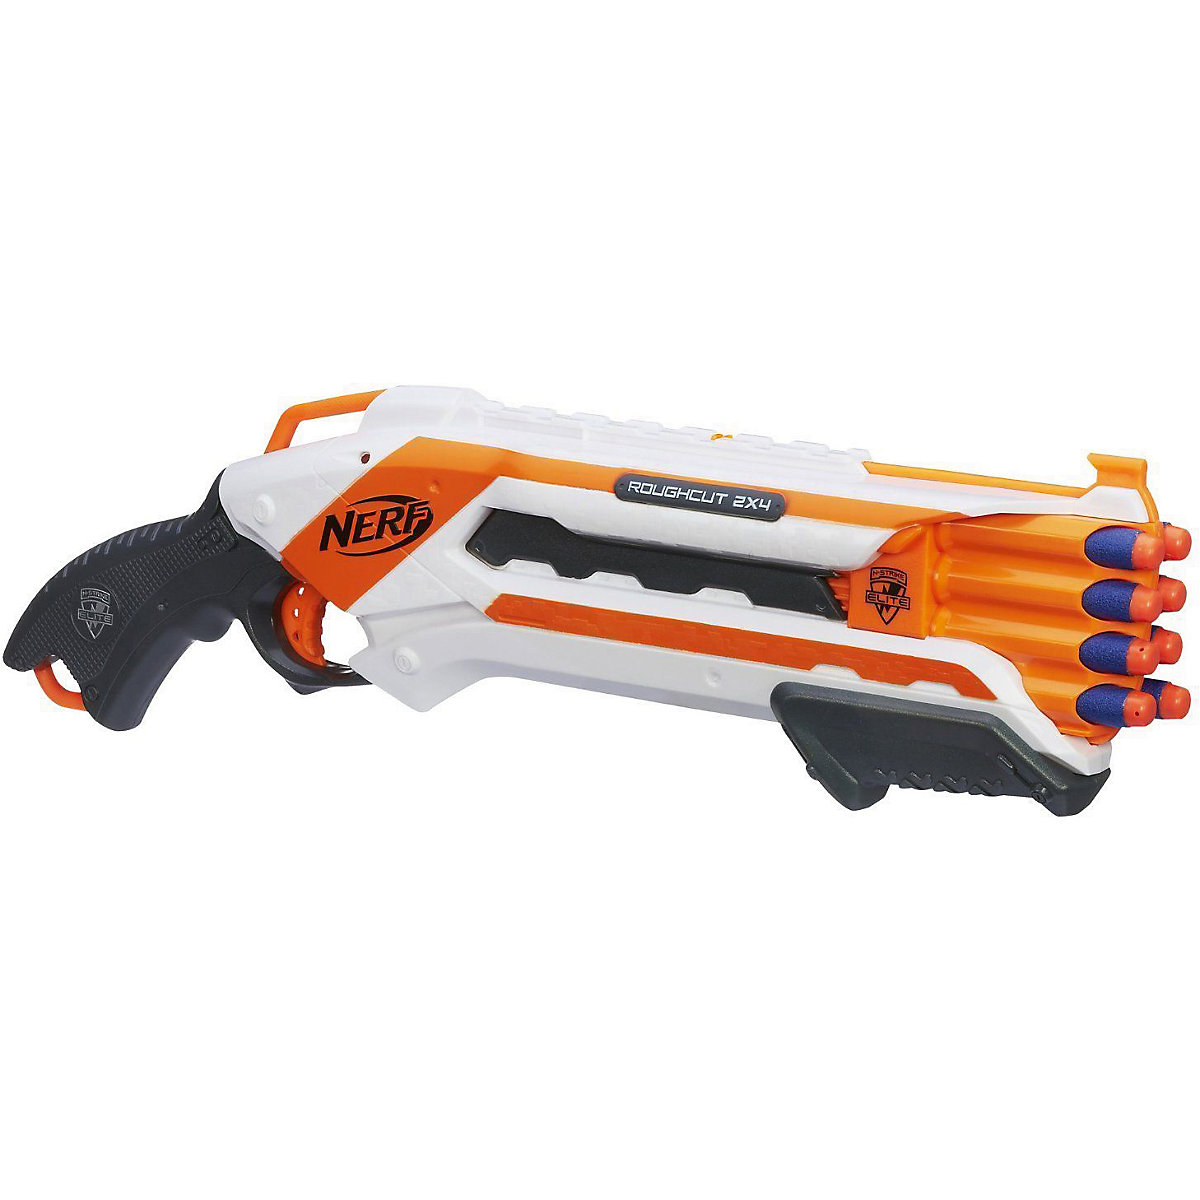 Toy Guns NERF 3222052 Children Kids Toy Gun Weapon Blasters Boys Shooting games Outdoor play new summer water sports baby kids inflatable swimming pool pvc portable swim family play pool children bath tub kids toy